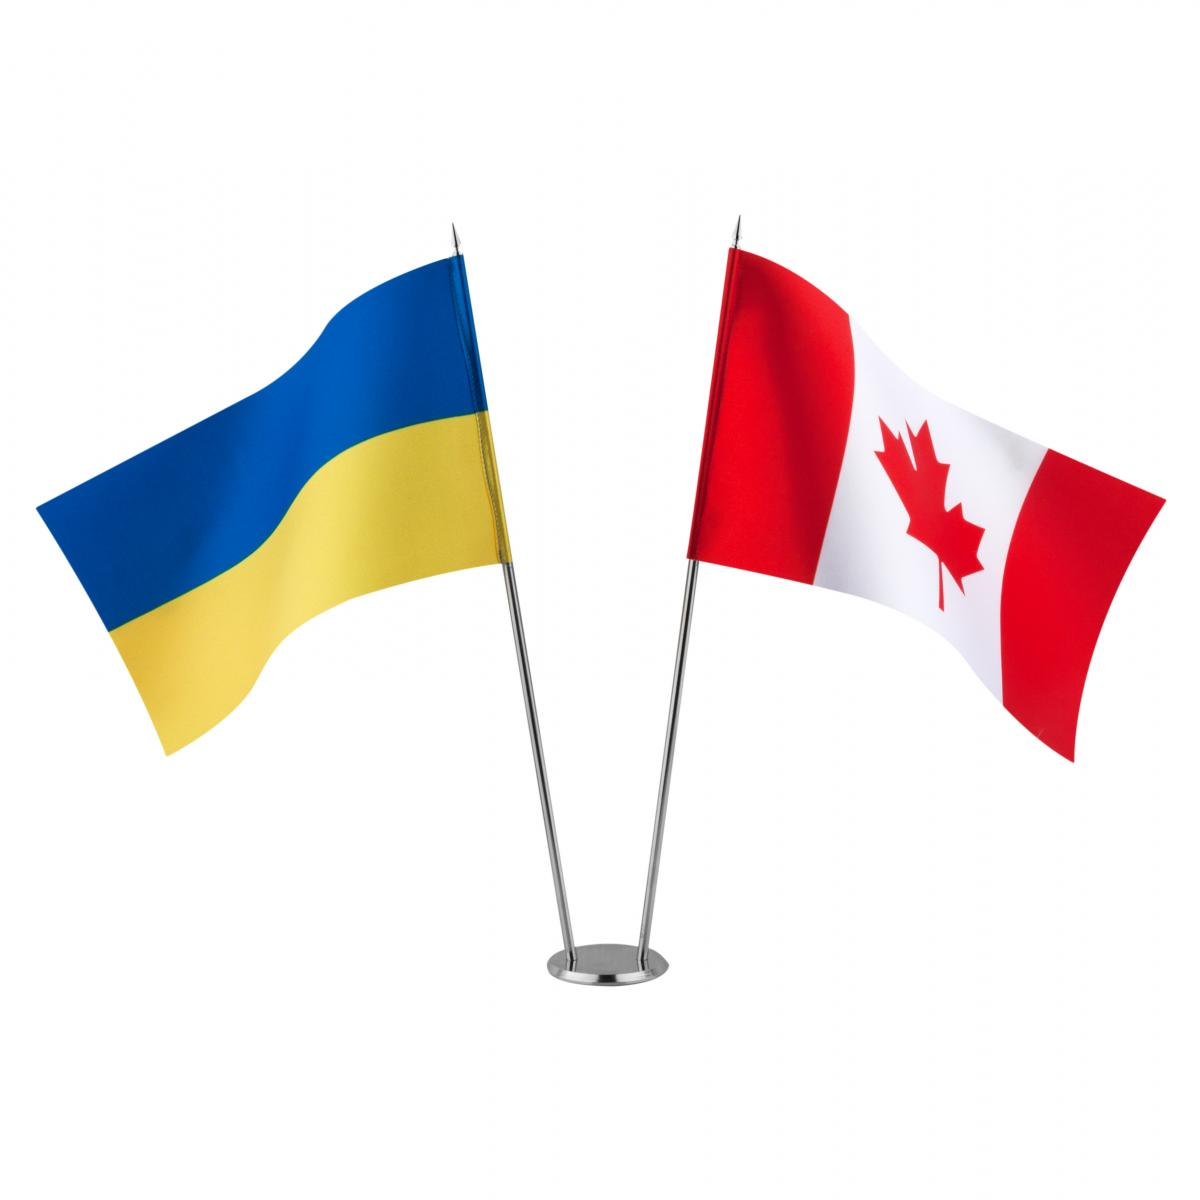 Flags of Ukraine and Canada on the stand